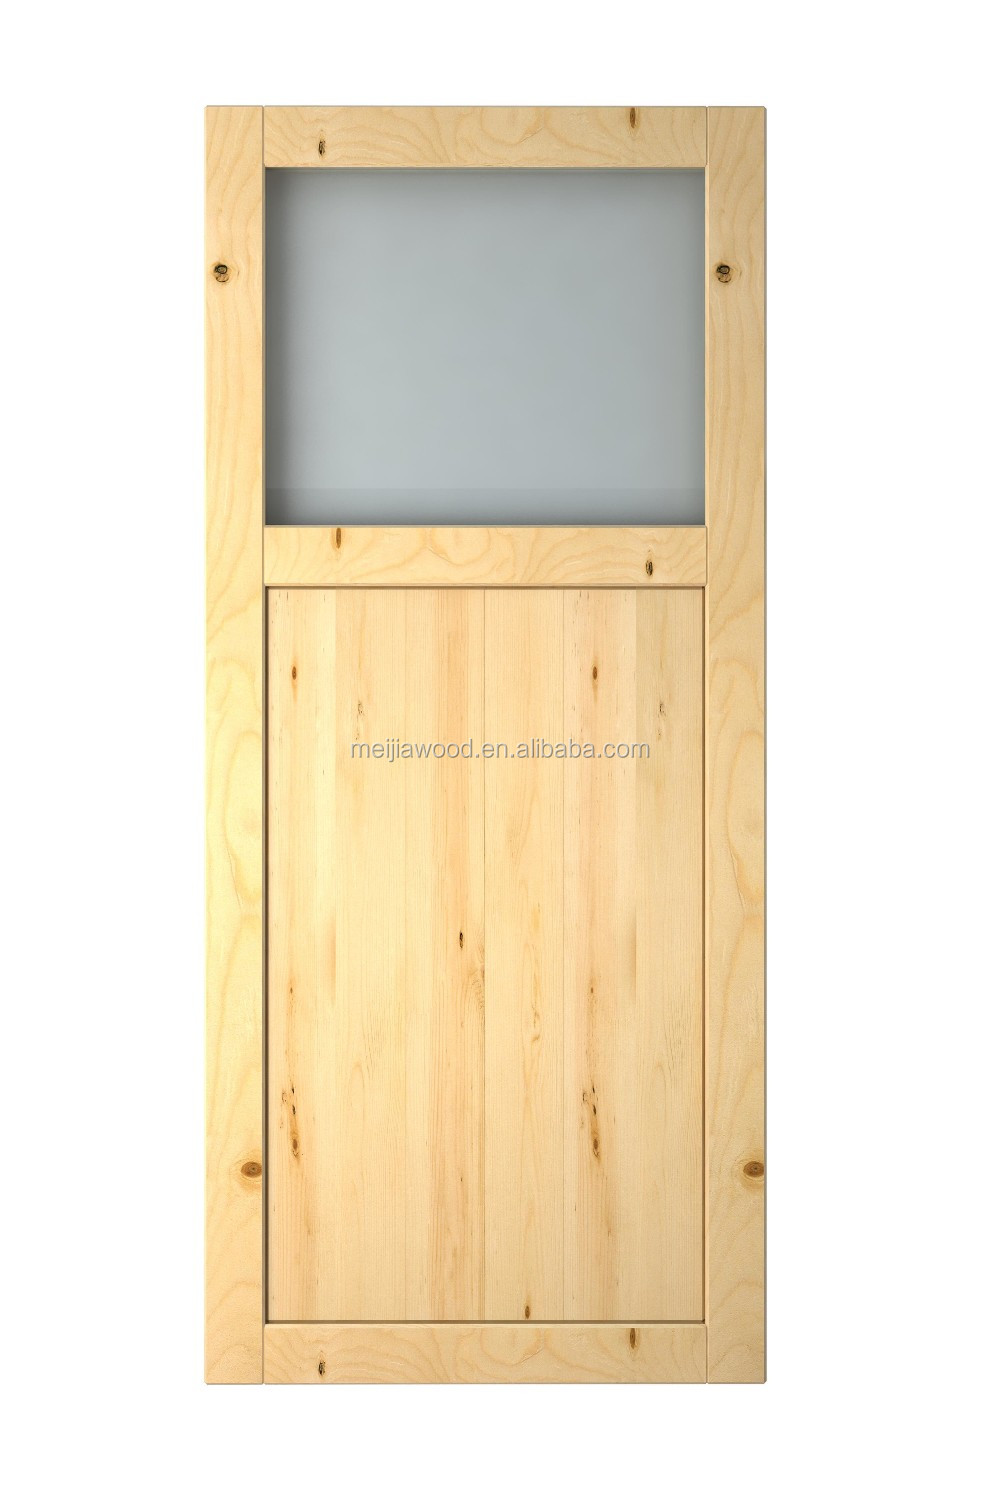 Craftsman Knotty Alder 2 Panel 1 Lite Solid Core With Clear tempered glass Barn Door Slab